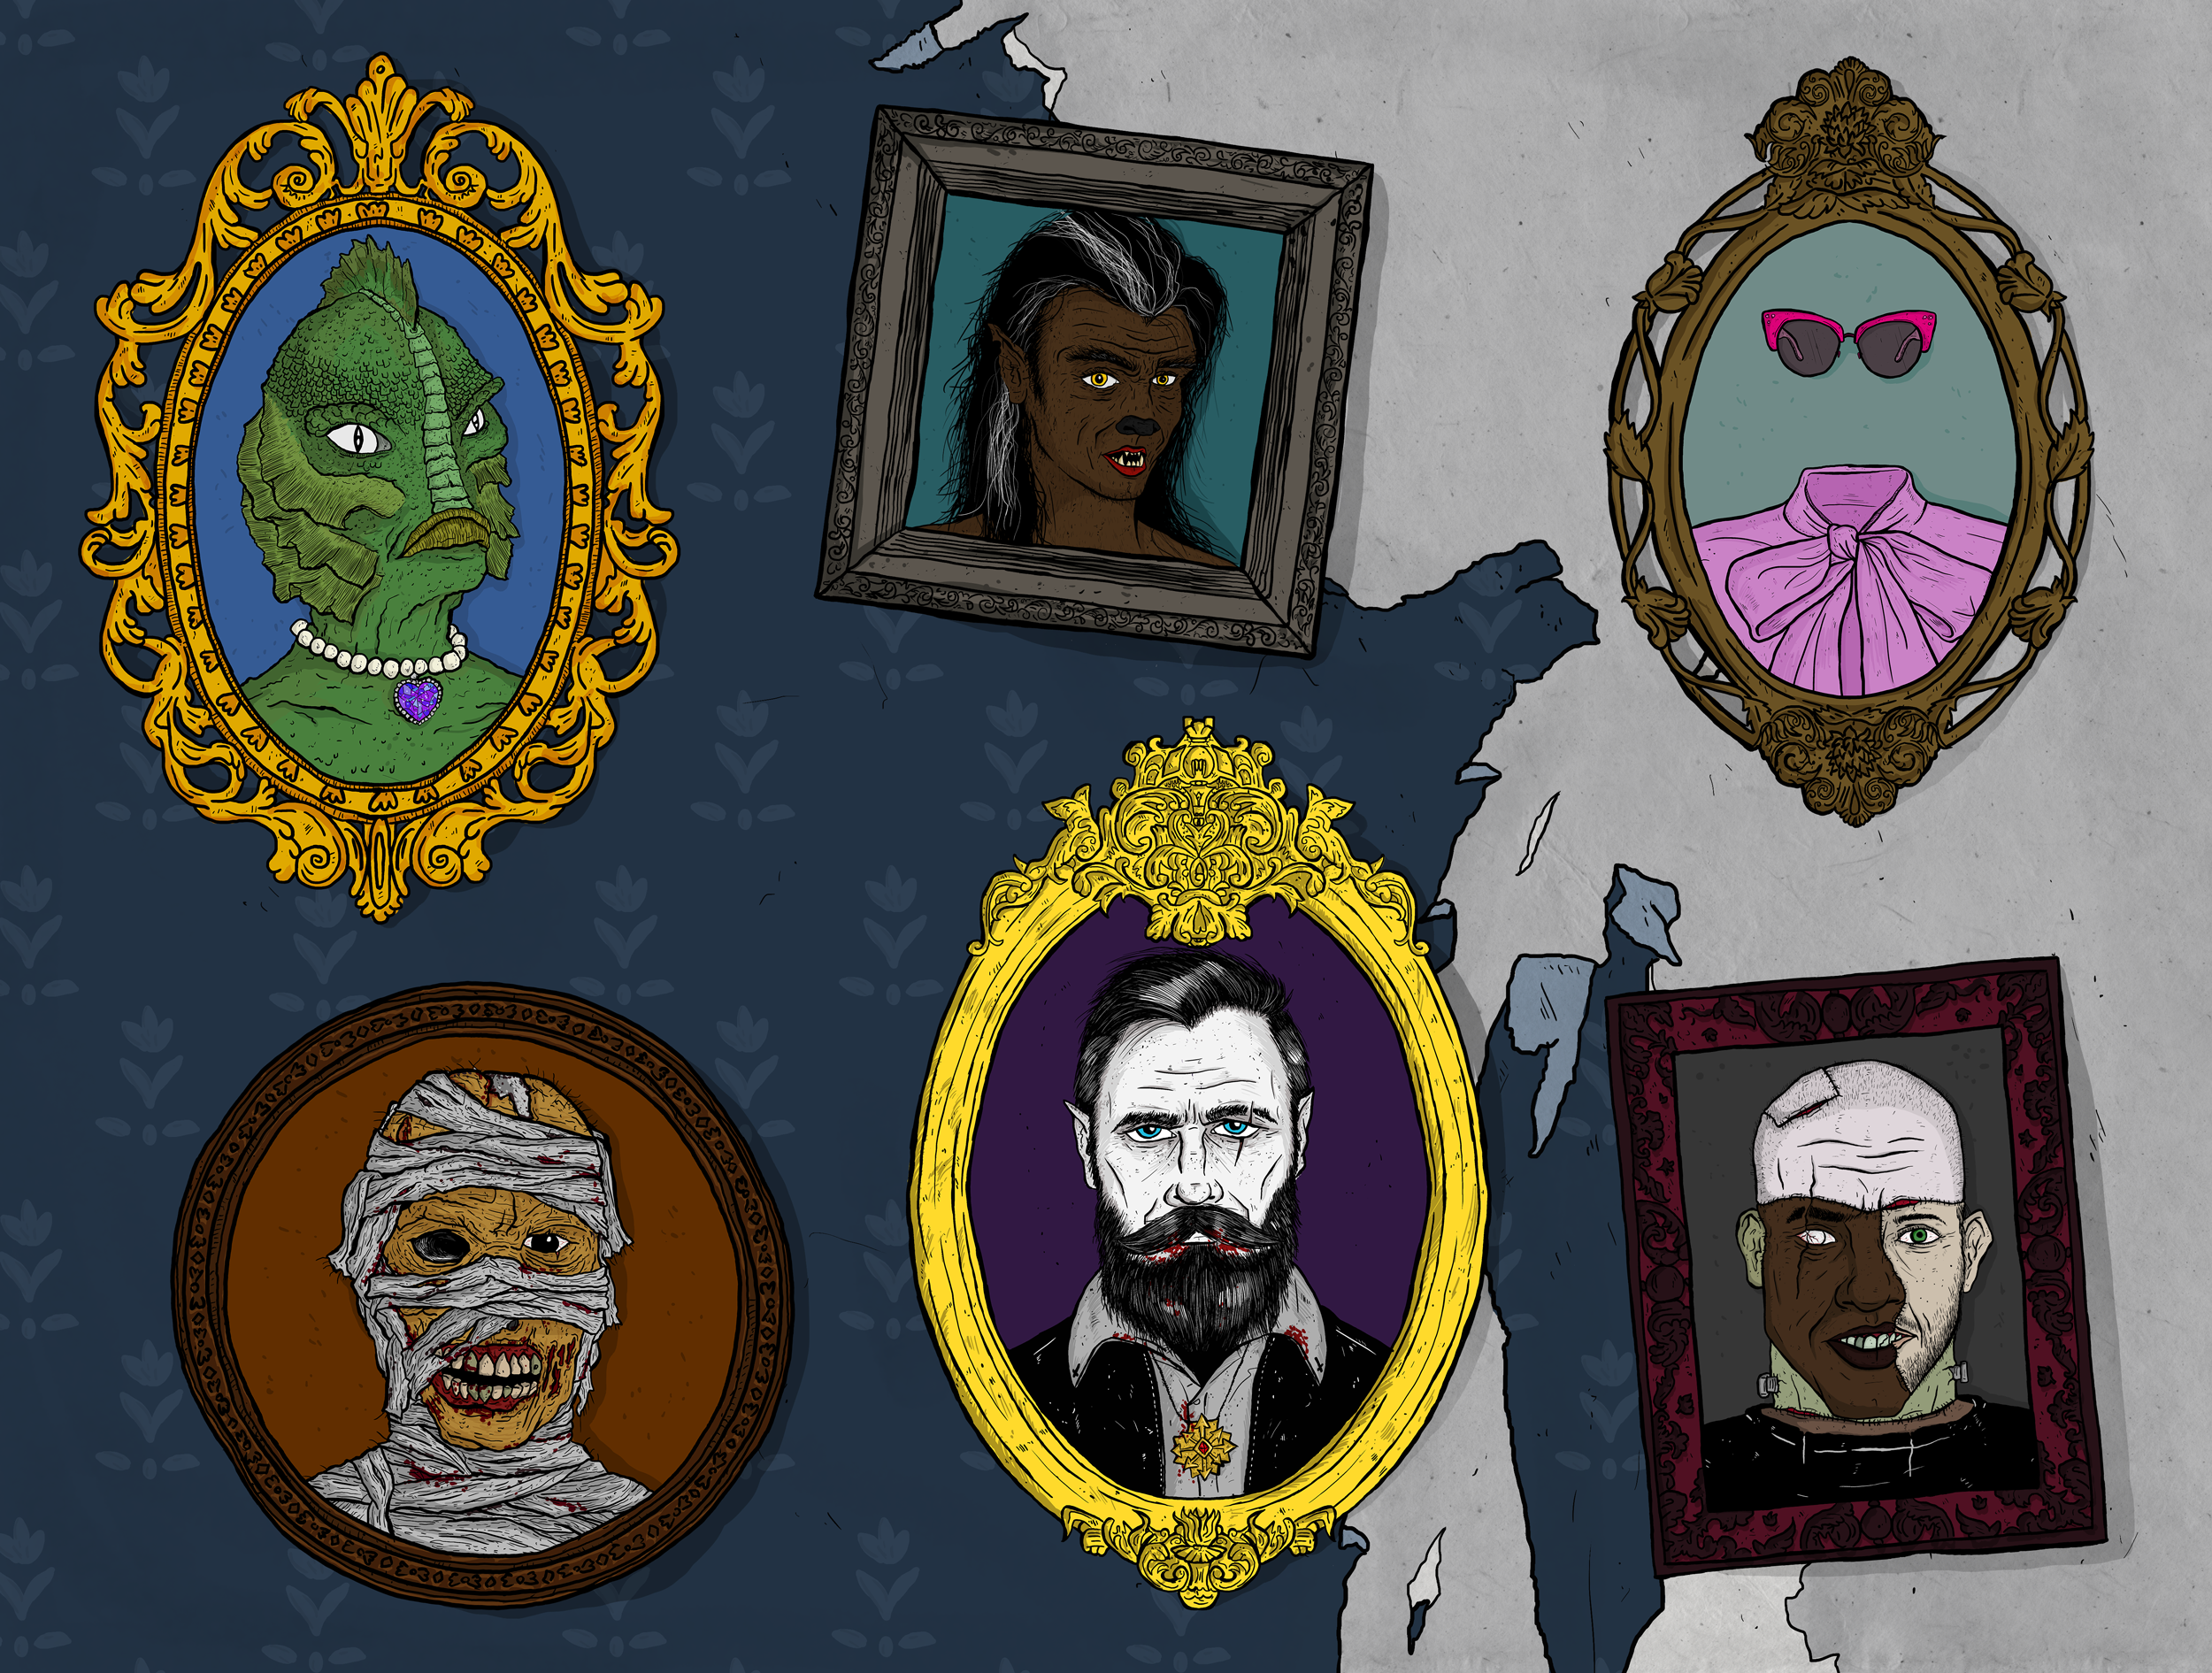 TOP LEFT TO RIGHT: Gillwoman, Shewolf, Invisible Woman BOTTOM LEFT TO RIGHT: Mummy, Dracula, Frankenstein's Monster